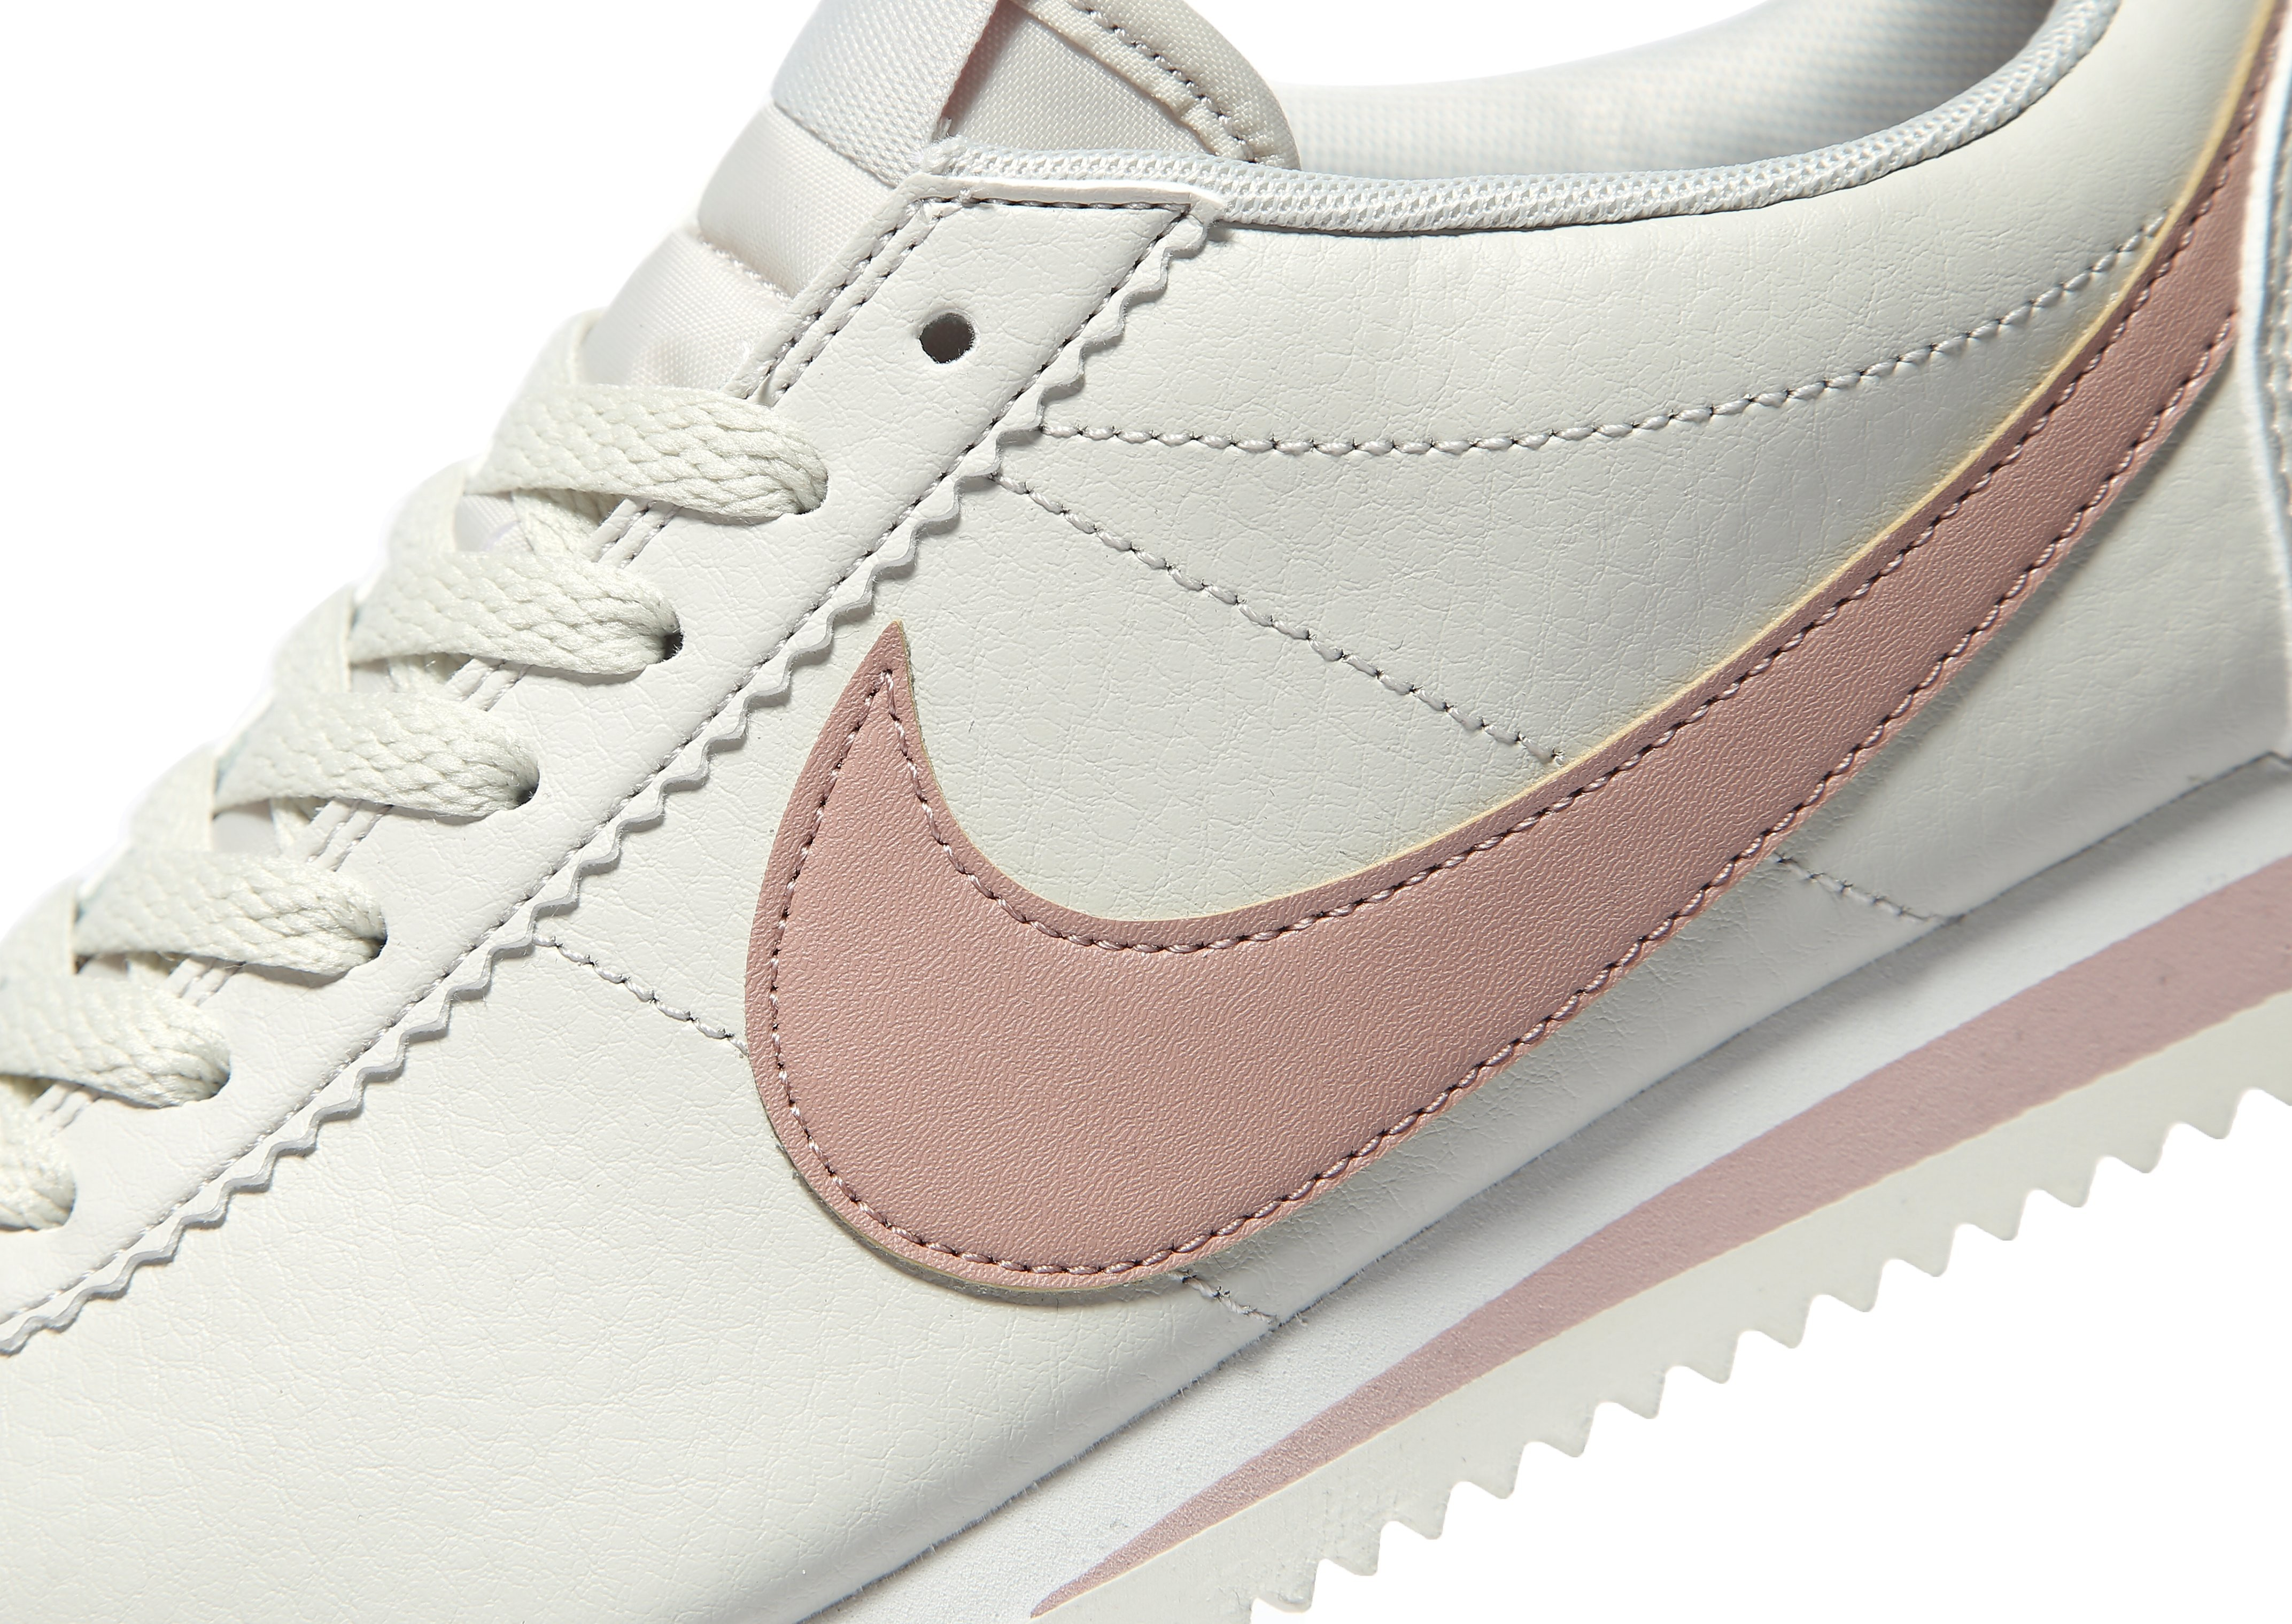 Nike Cortez Leather Women's